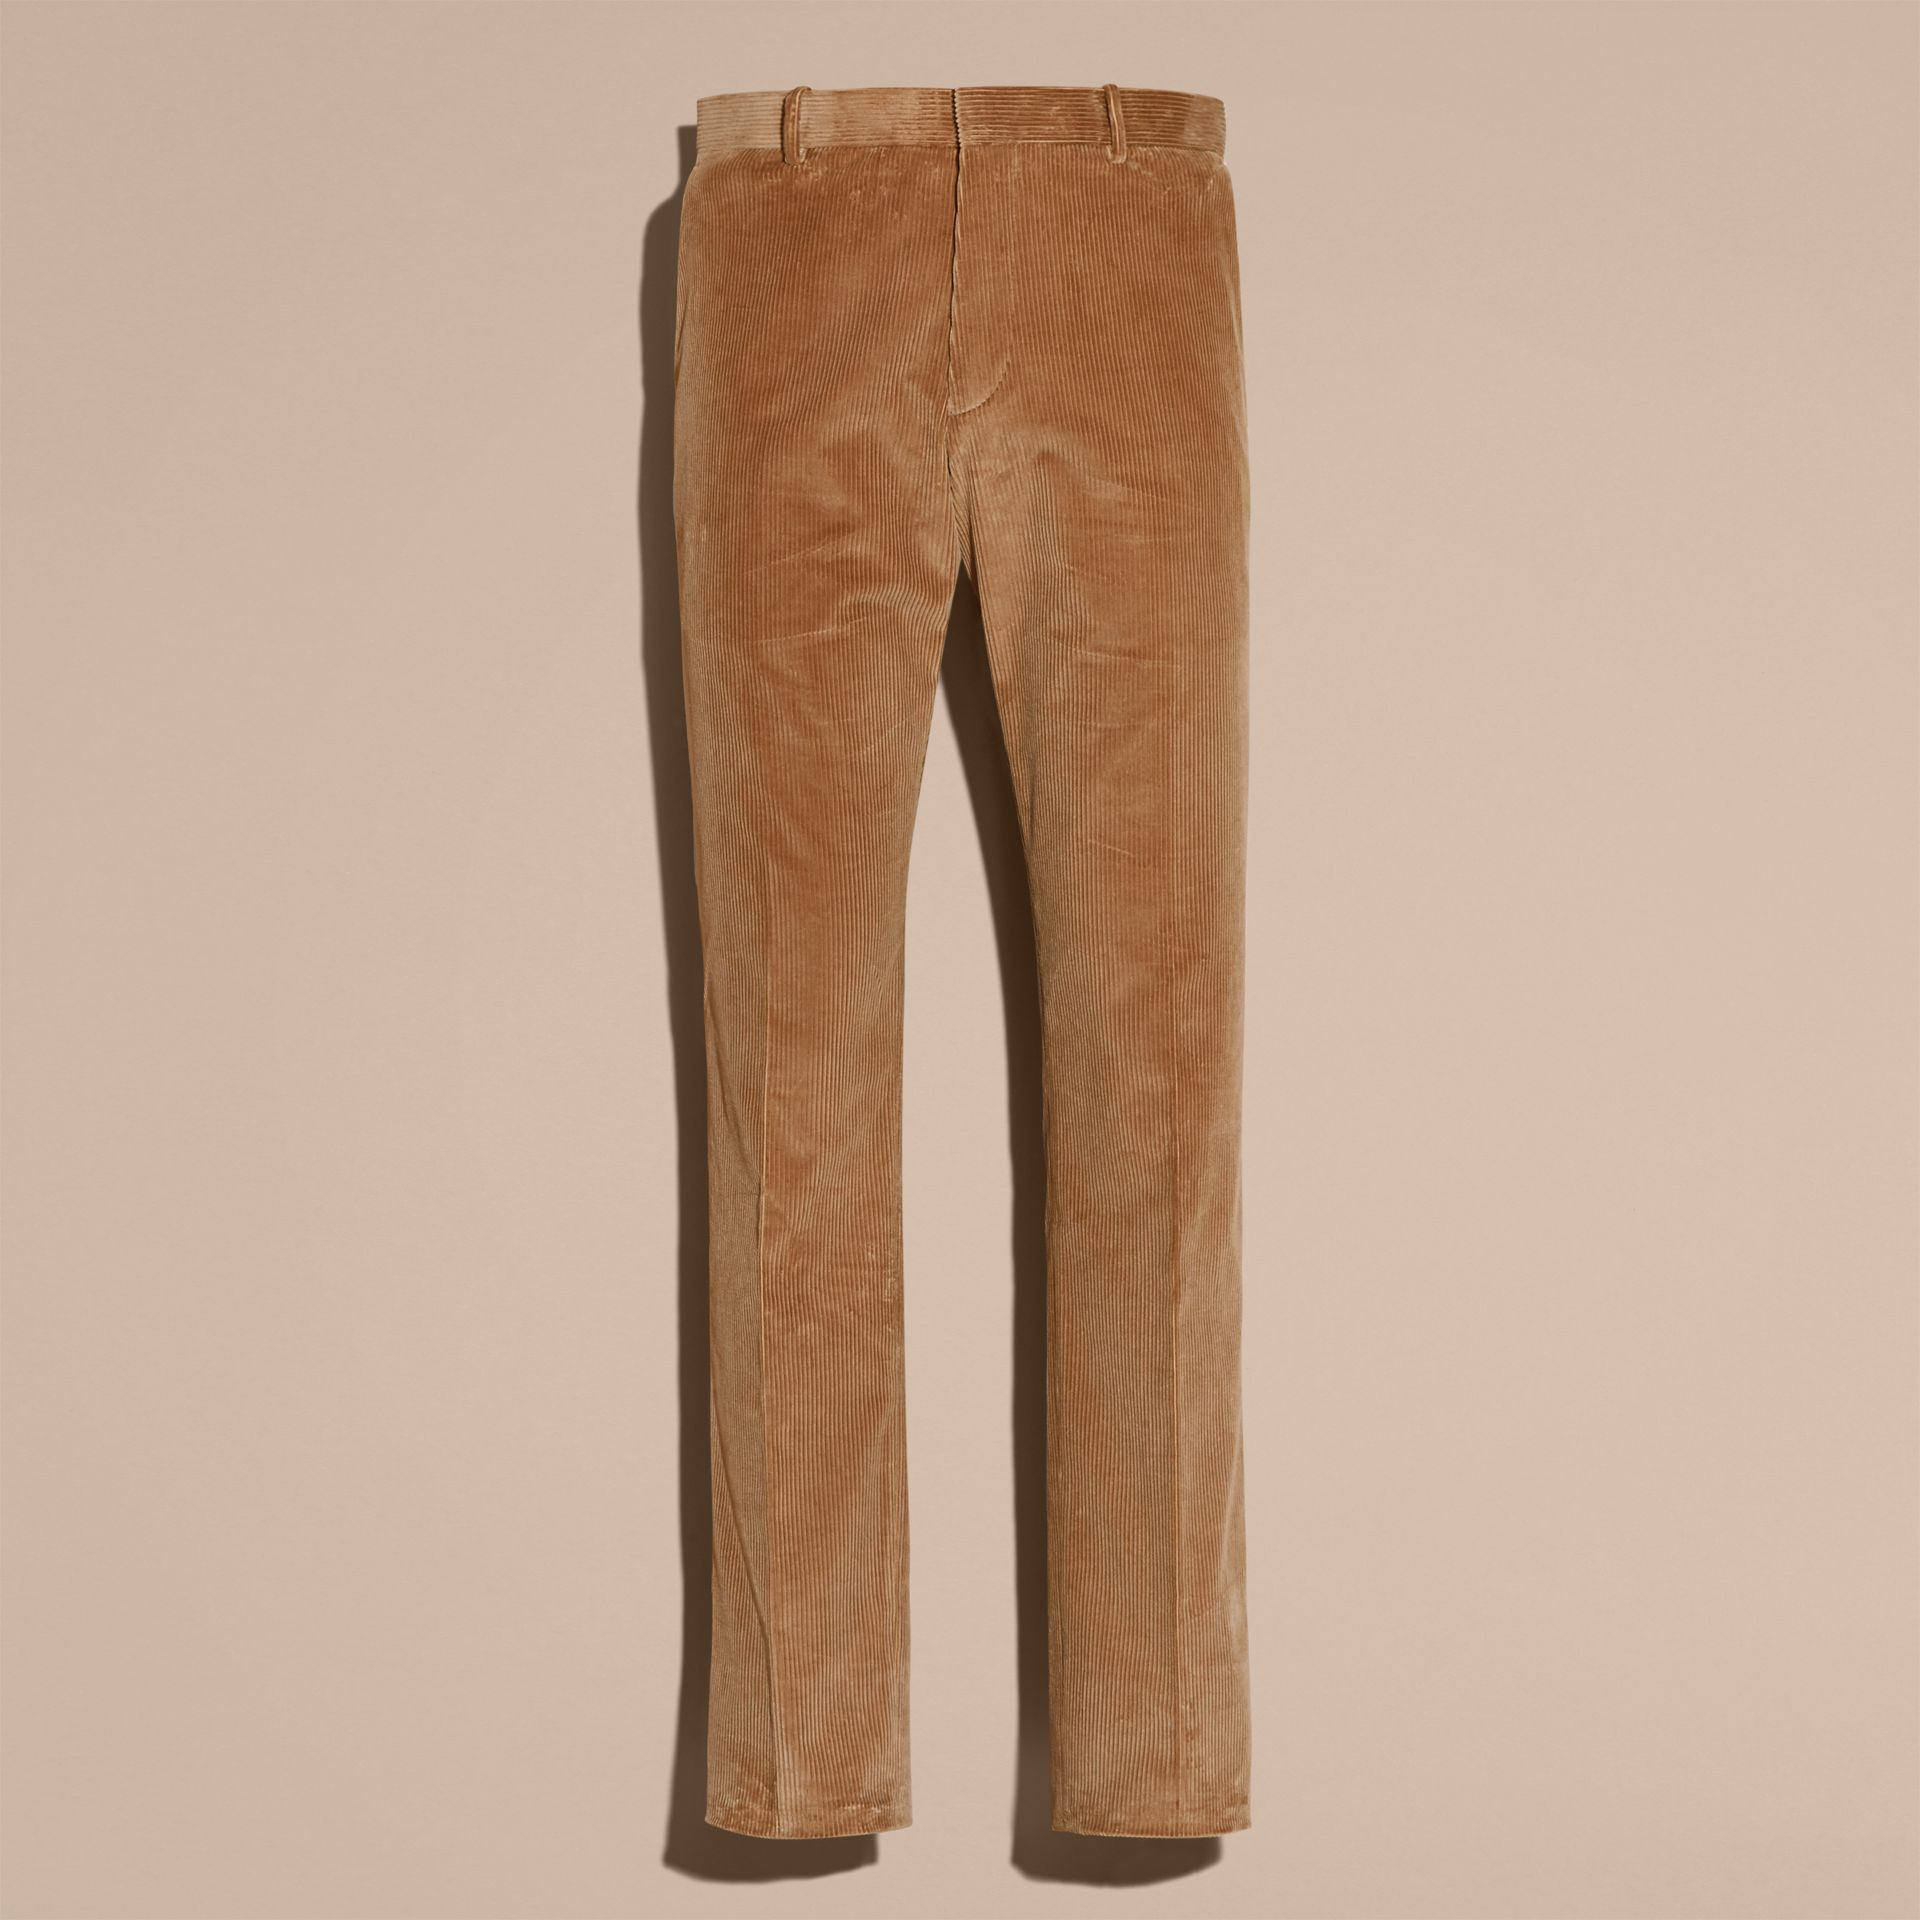 Camel Slim Fit Cotton Corduroy Trousers Camel - gallery image 4